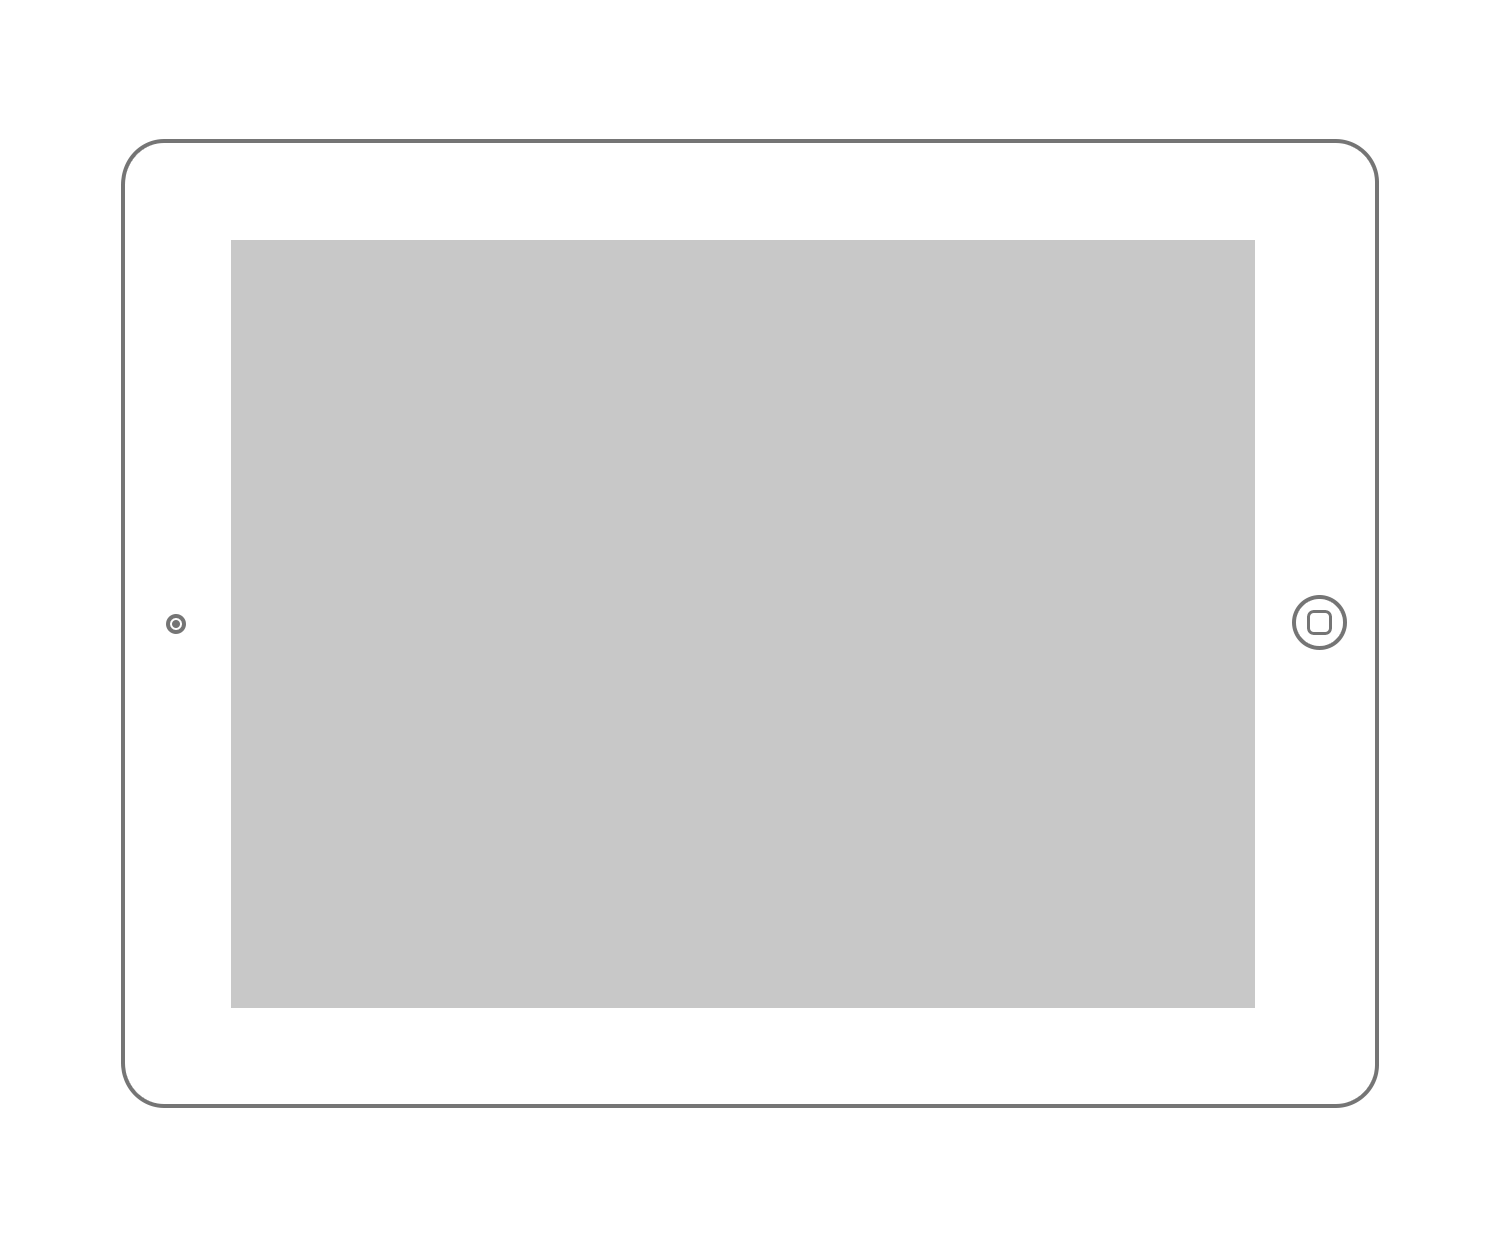 Apple ipad tablet clipart clip free Ipad In Png #23944 - Free Icons and PNG Backgrounds clip free